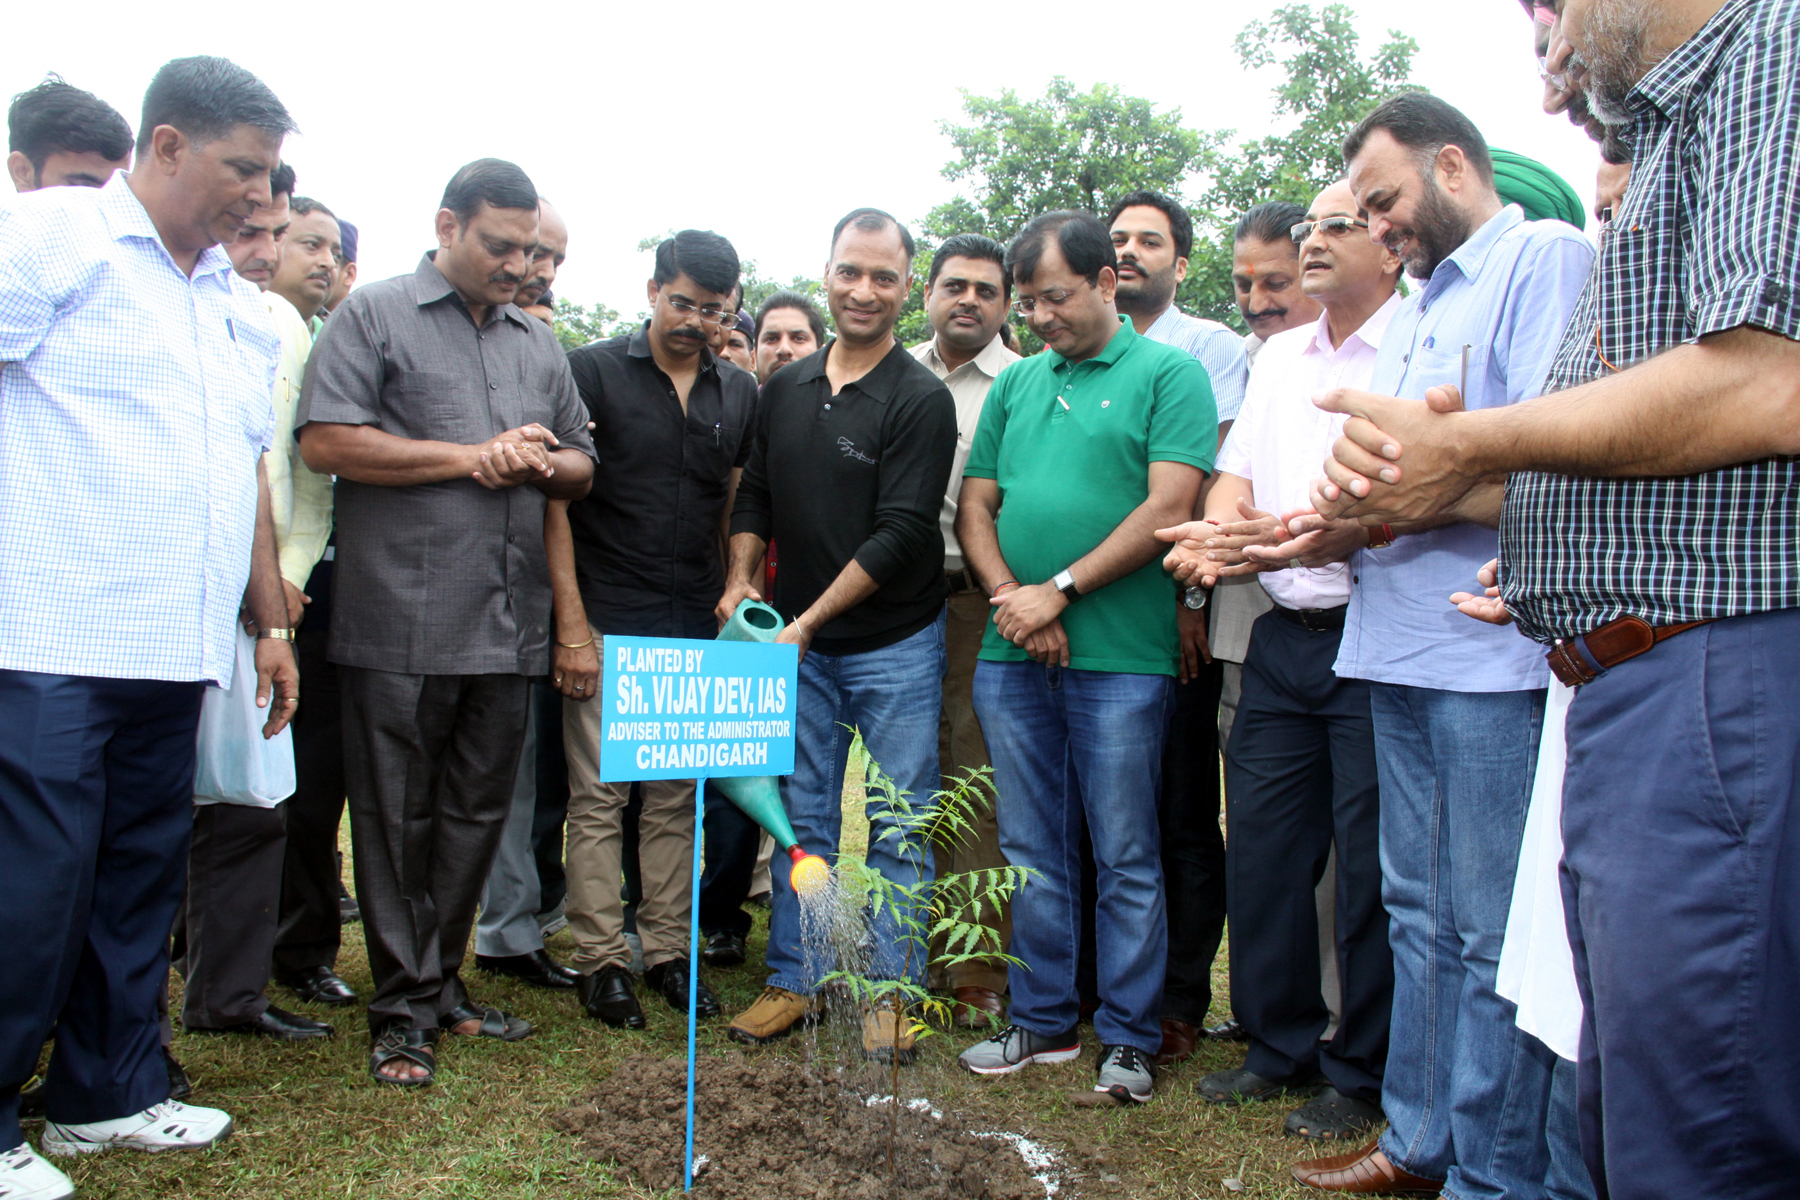 The Adviser to the Administrator, UT, Chandigarh, Mr. Vijay Dev sprinkling water on the sapling of �Neem� in the Park at Sector-48, Chandigarh on Saturday, August 01, 2015.